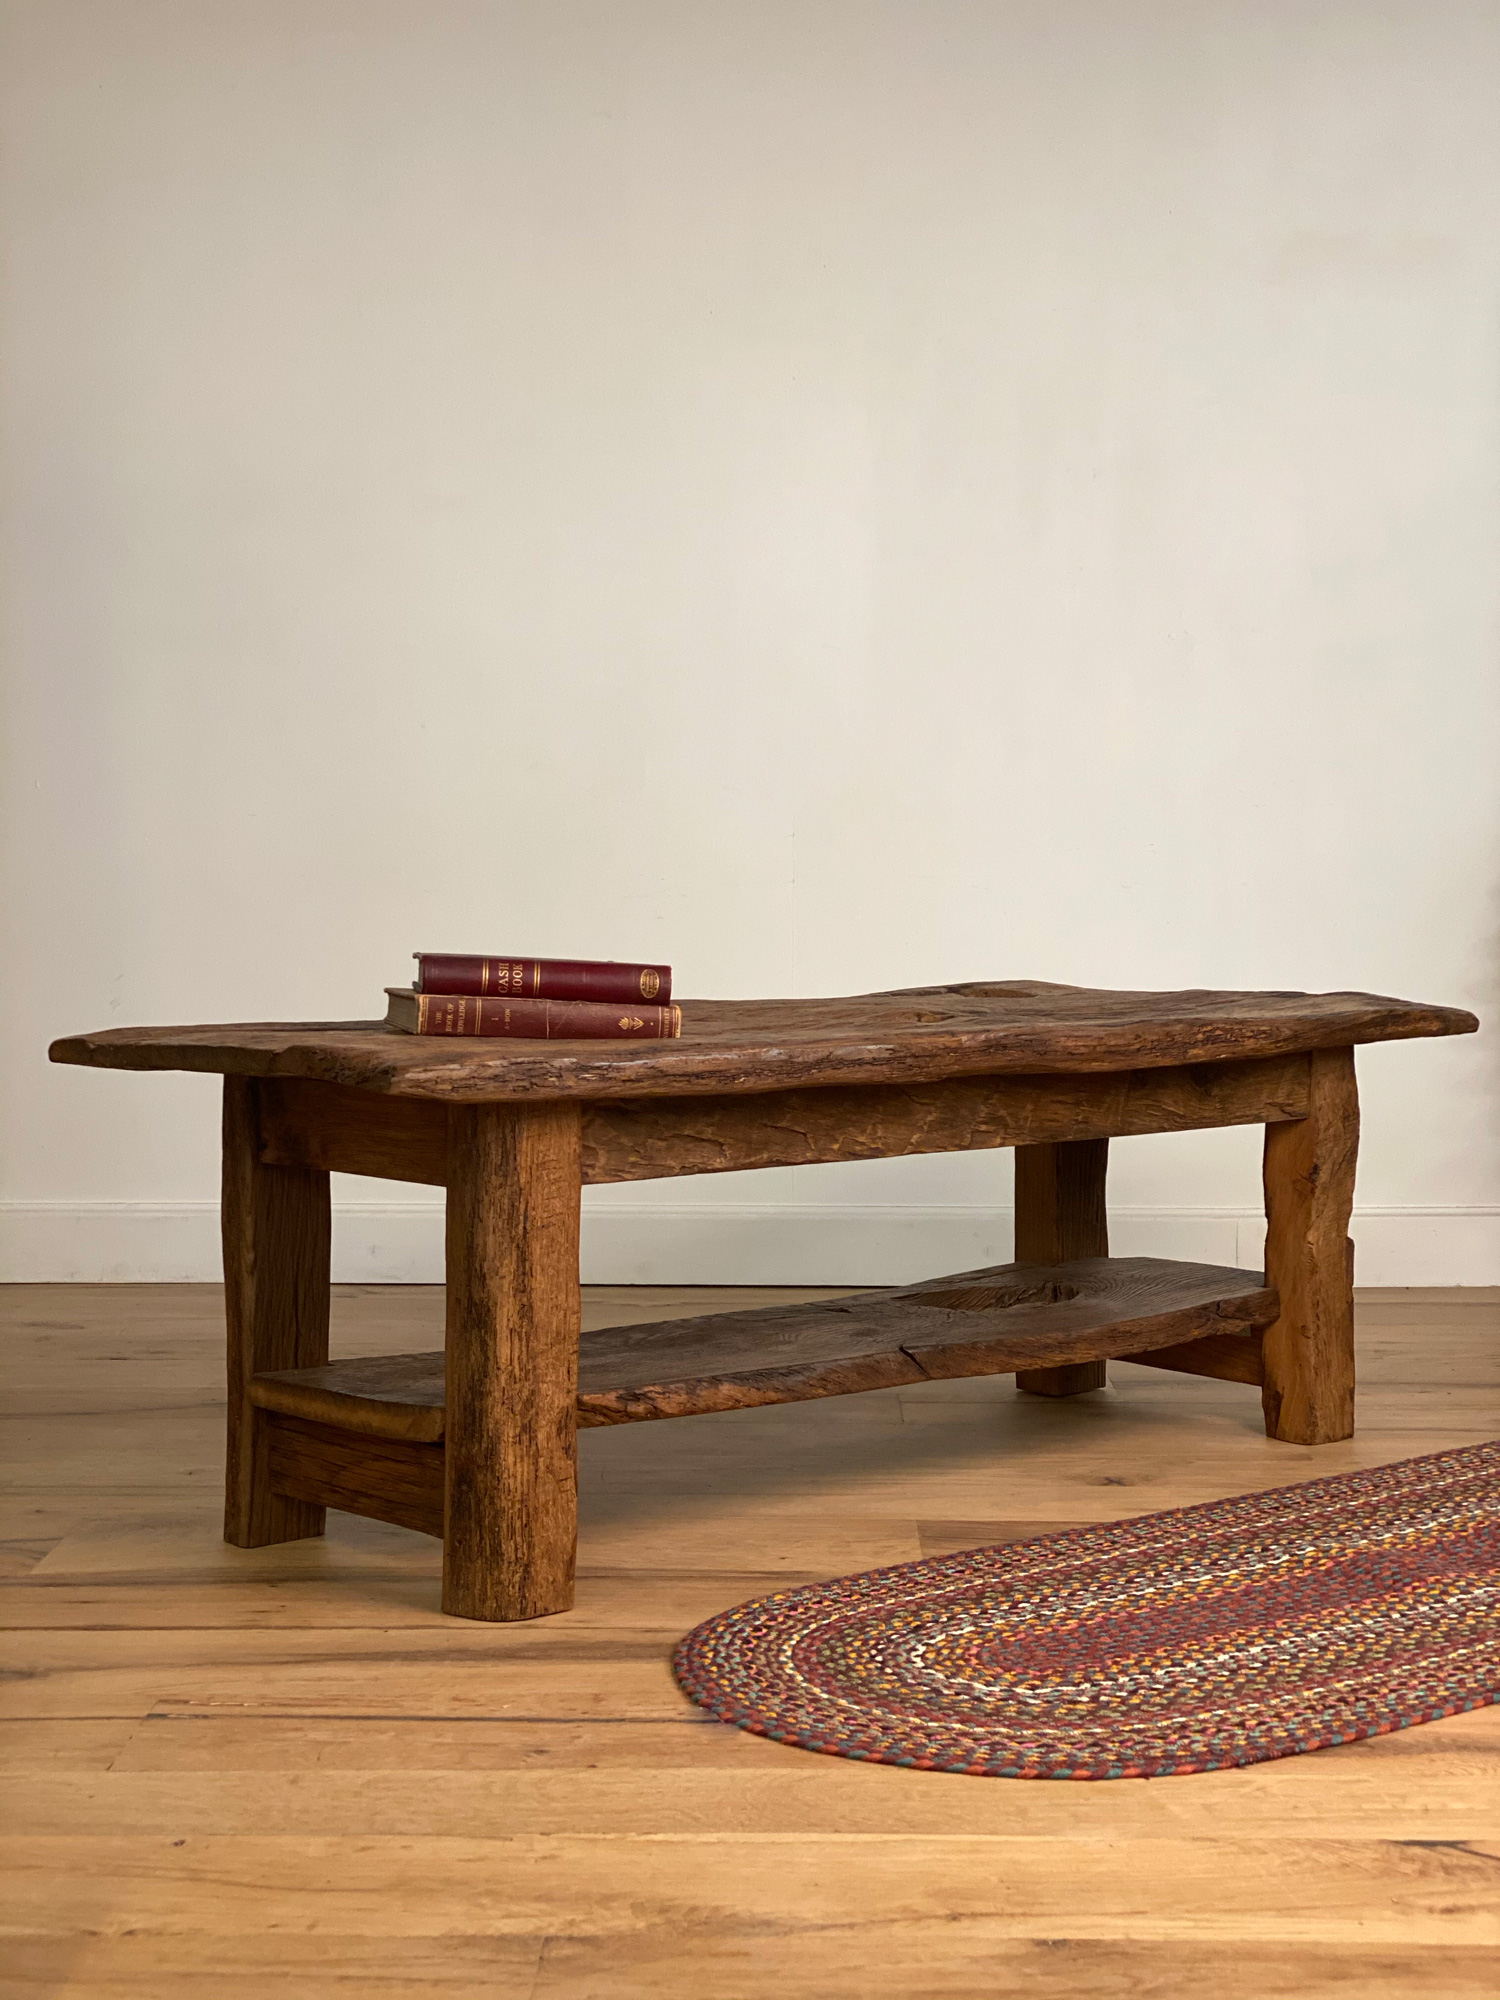 Coffee Table with Rug and Books